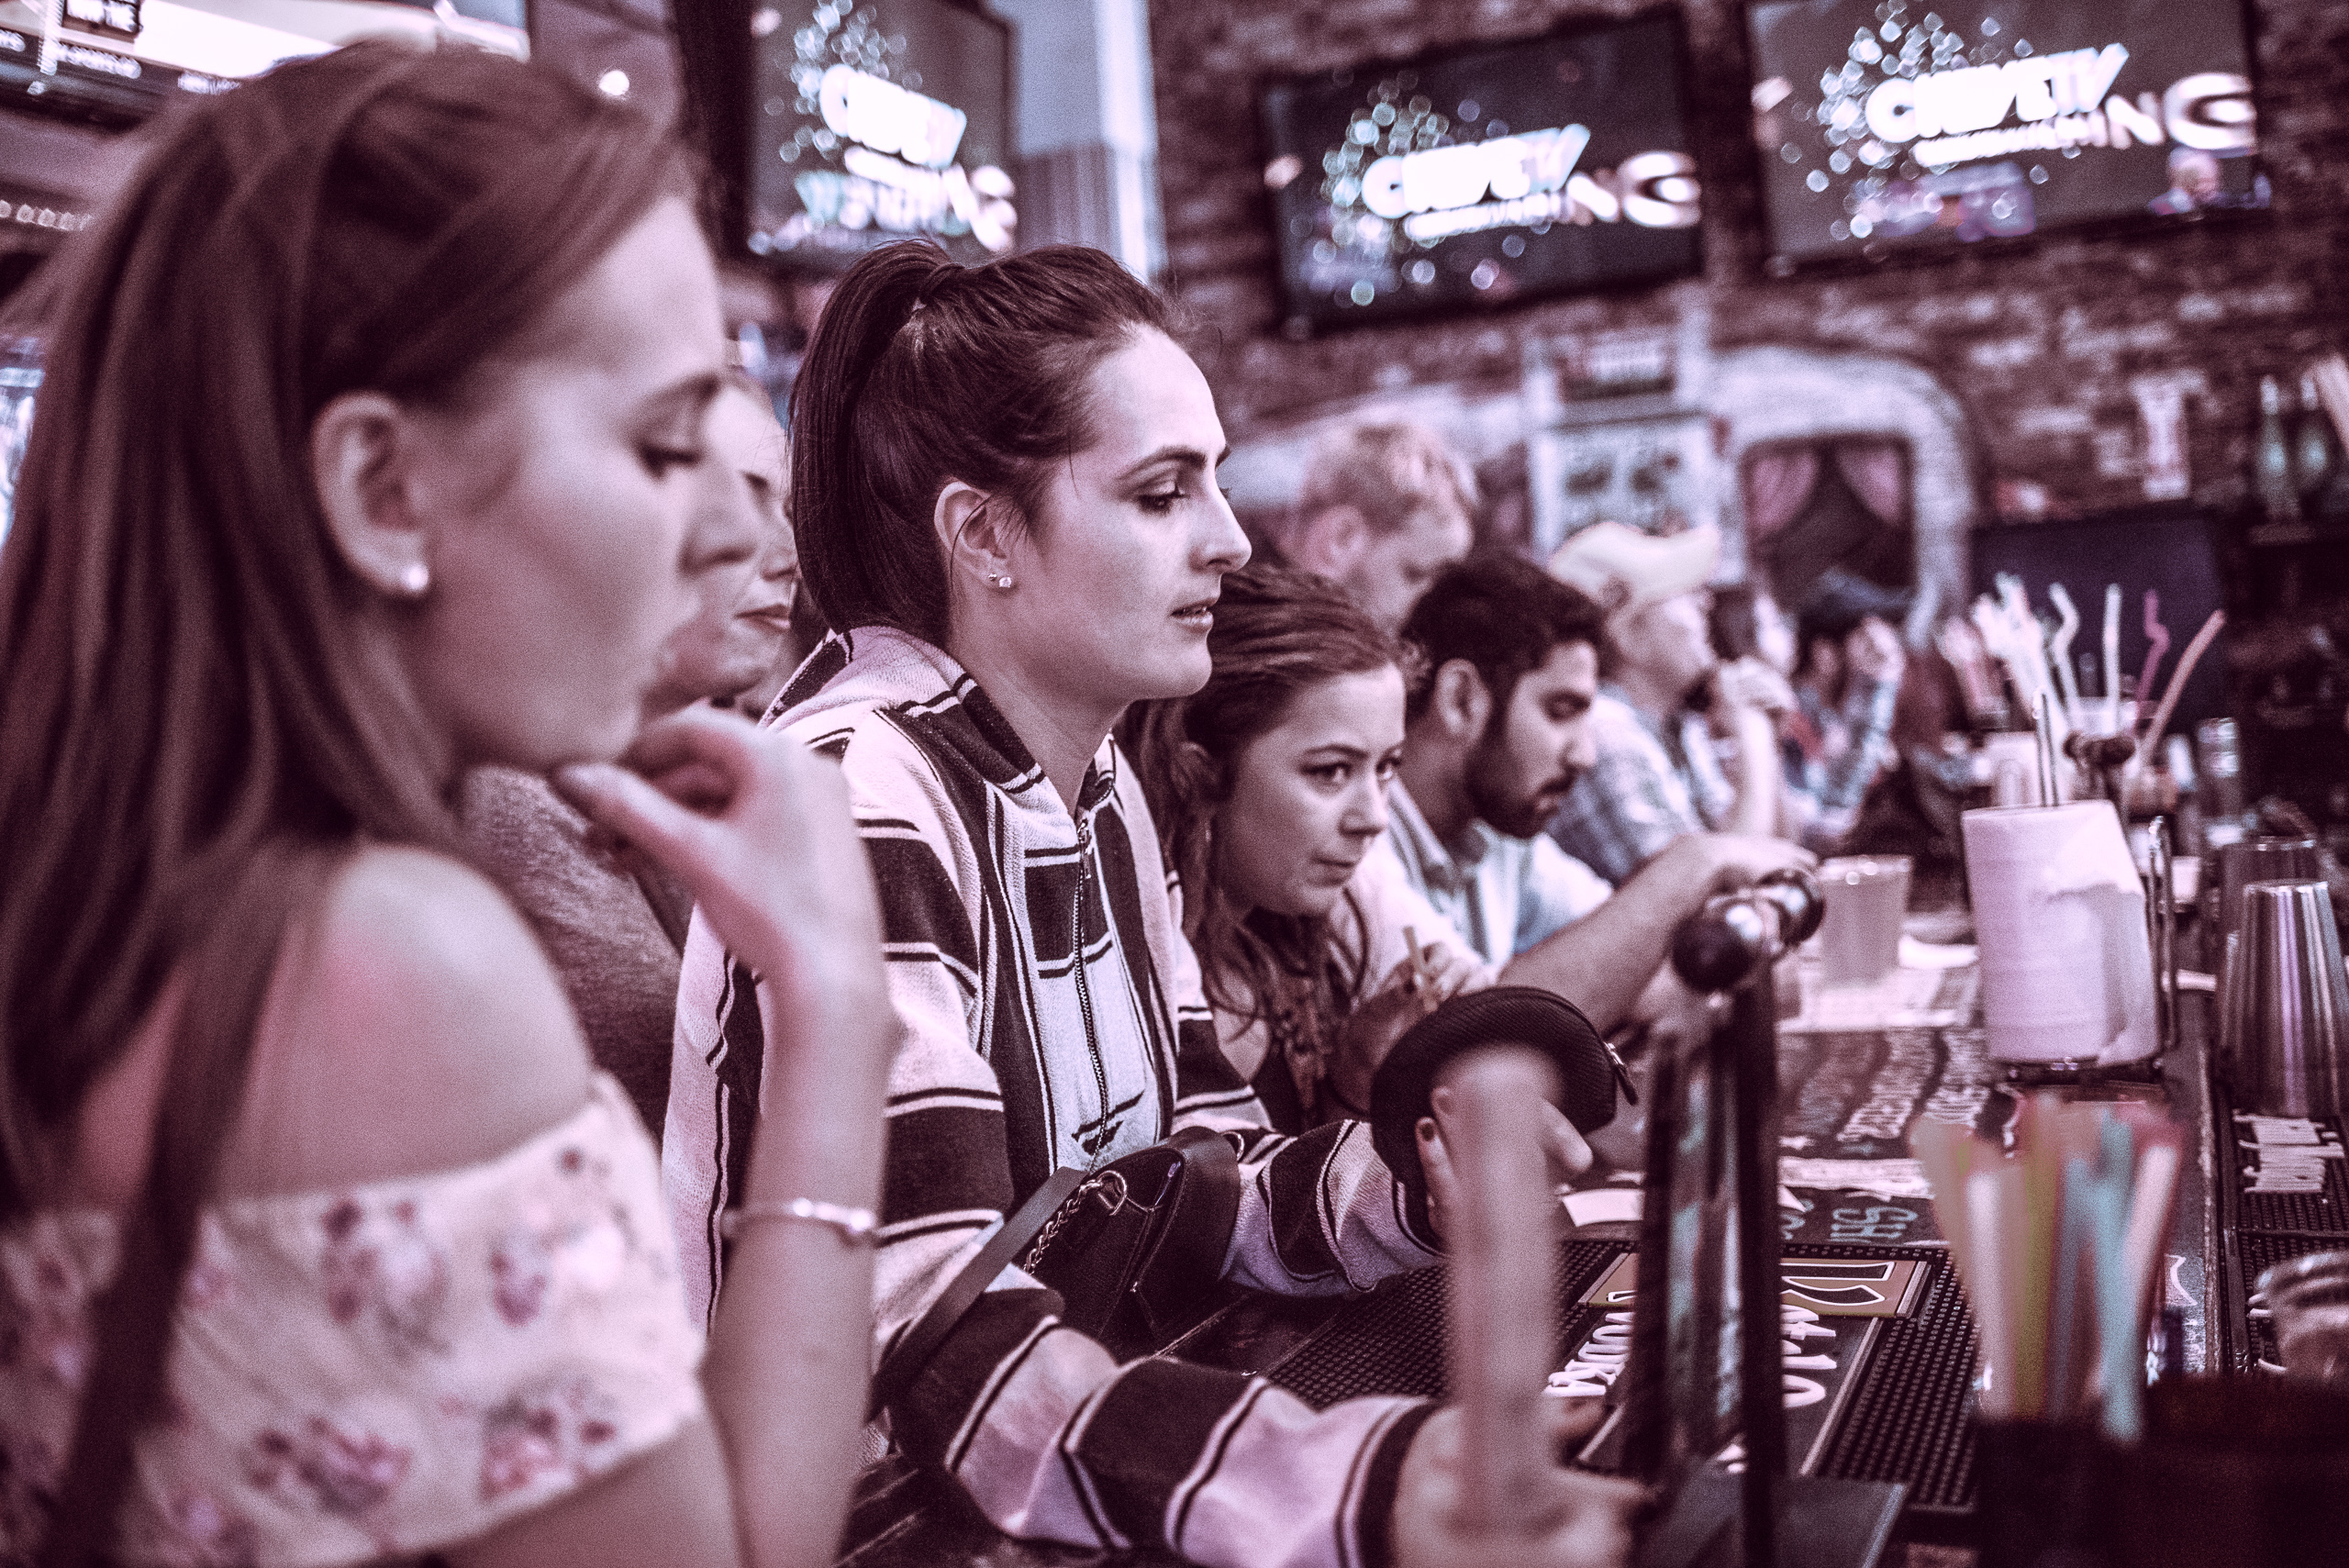 a group of women order drinks at the bar at Rusty Mullet on Hollwyood Blvd in Hollywood, Los Angeles, California